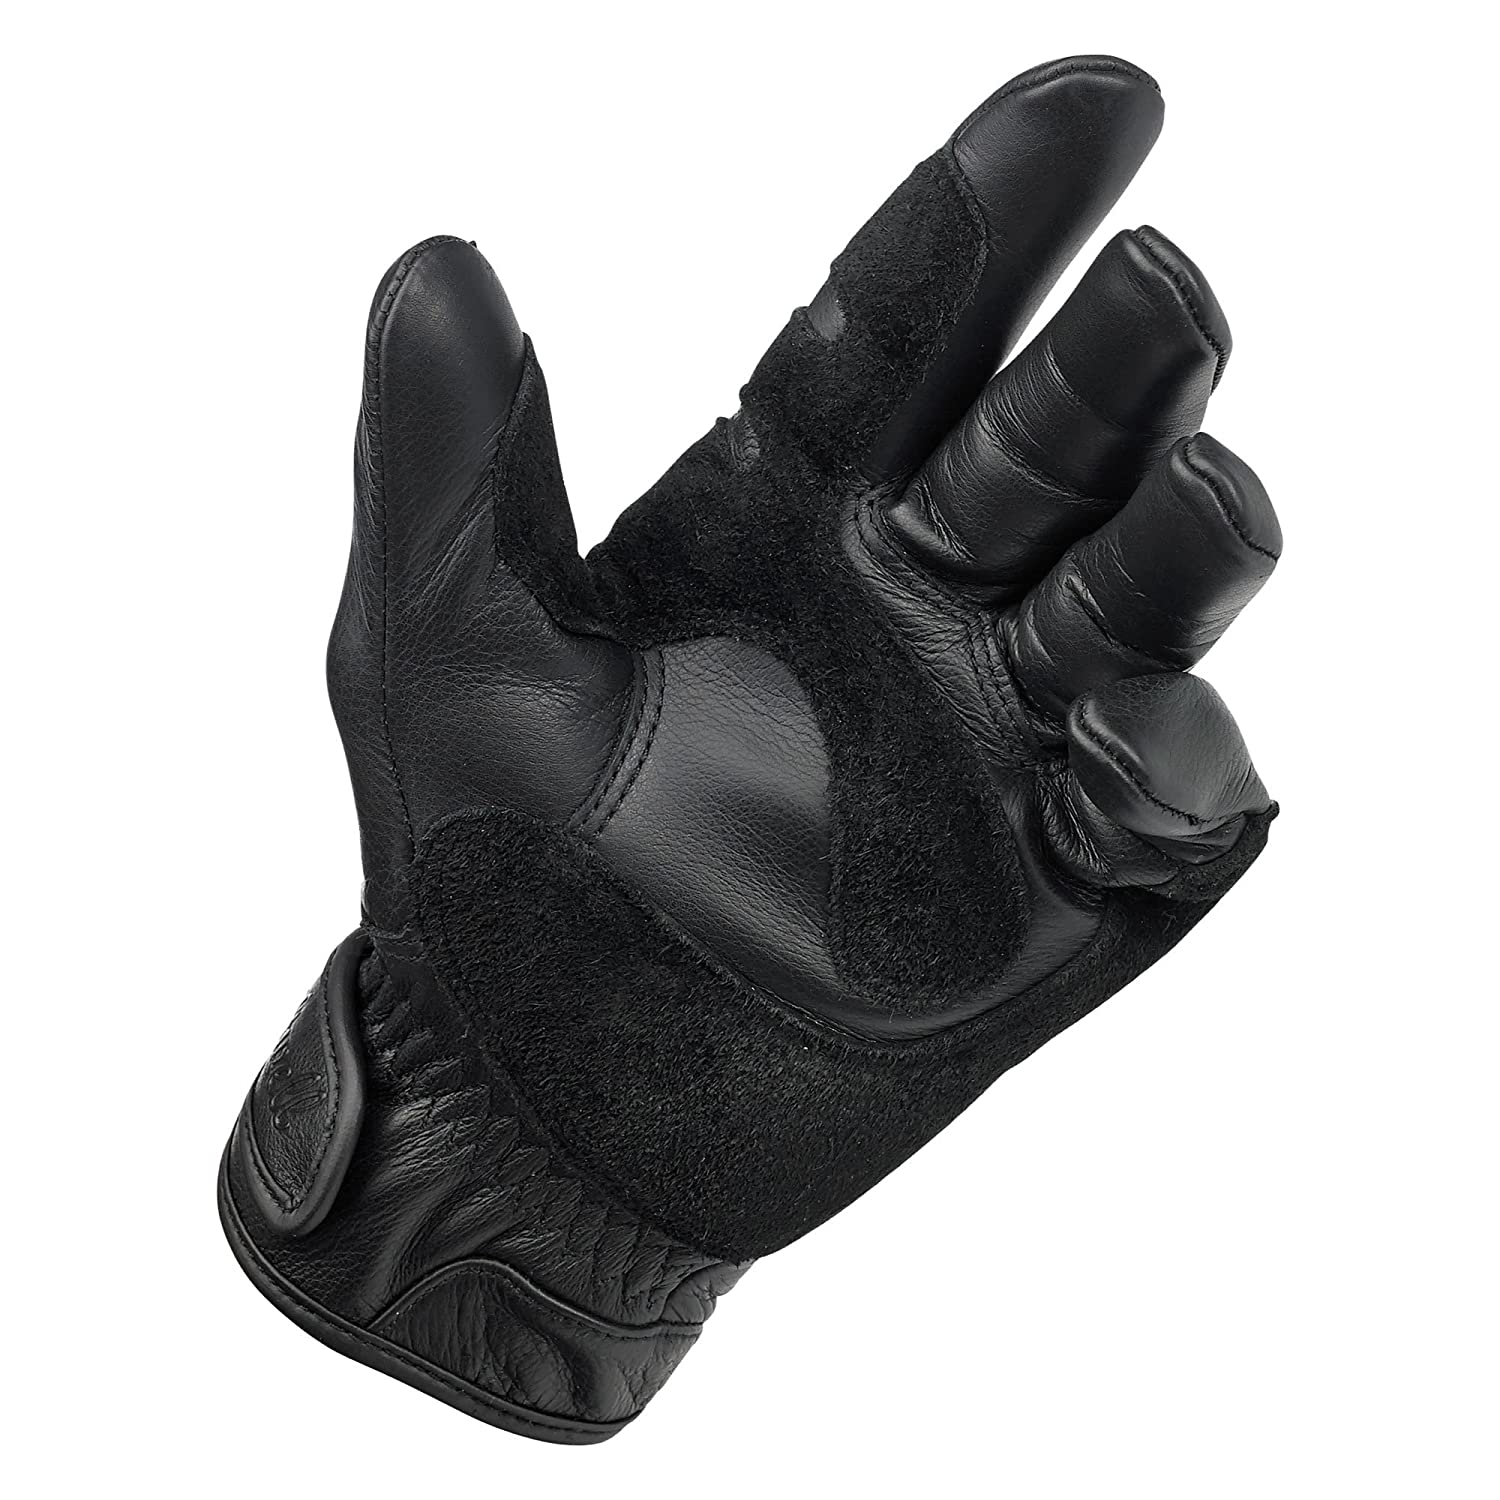 Biltwell Work Gloves Black, Large